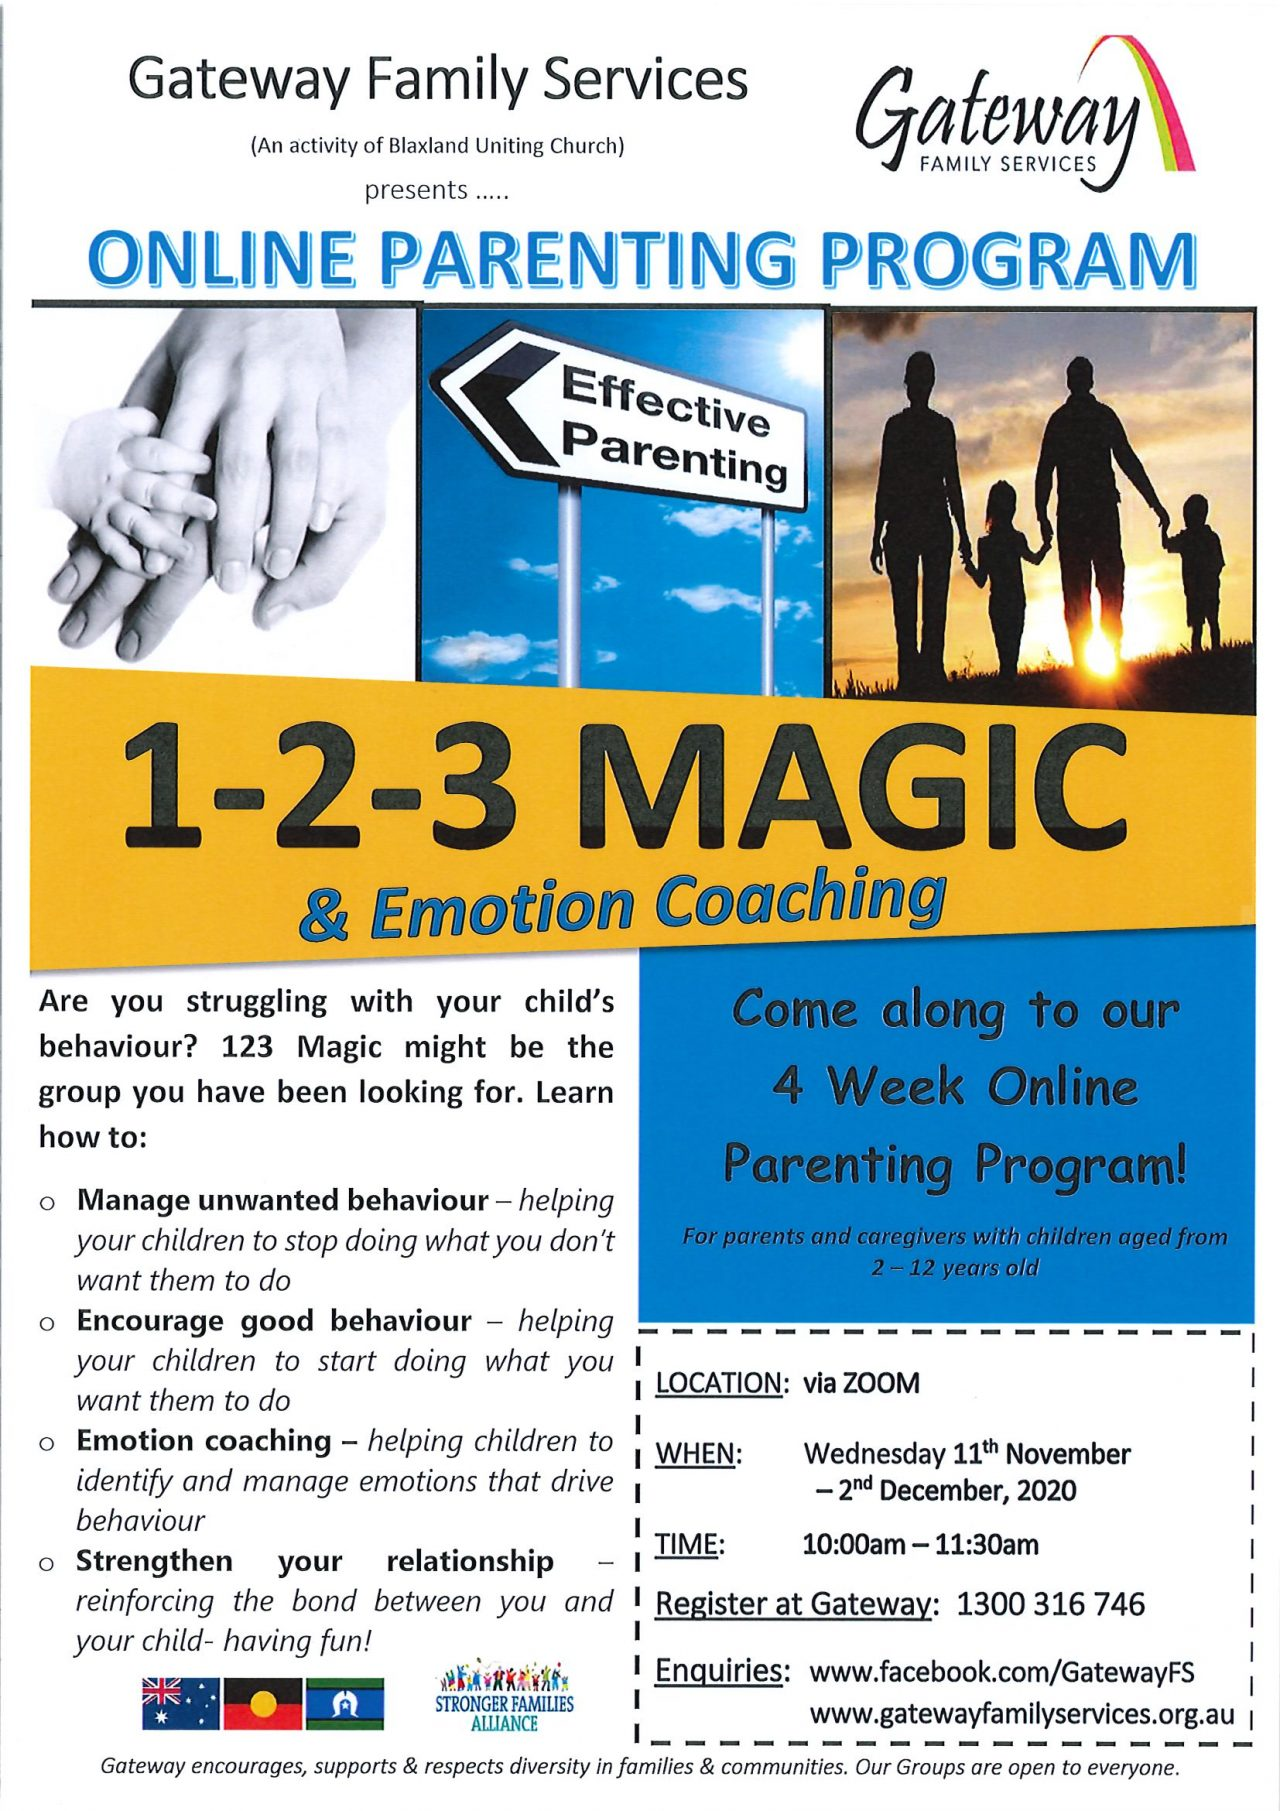 T42020-Flyer-123-Magic-Emotion-Coaching-Wed-AM-1280x1811.jpg